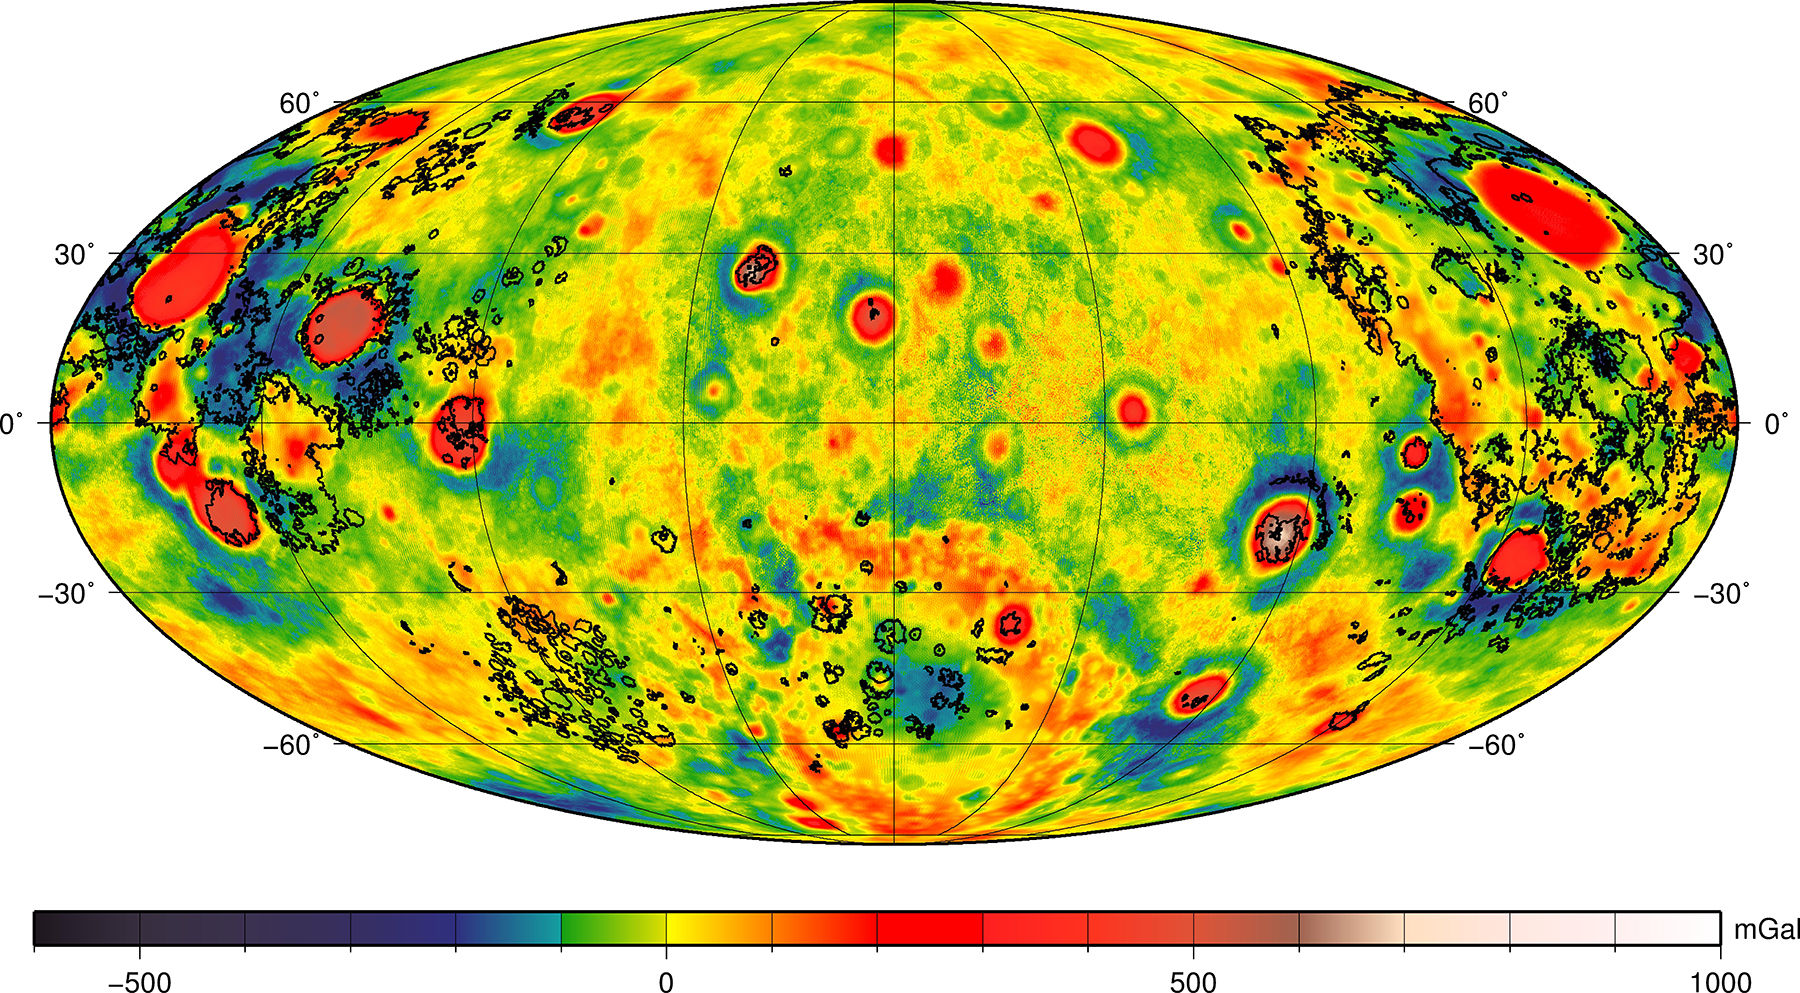 Mollweide projection map of the Moon's crust